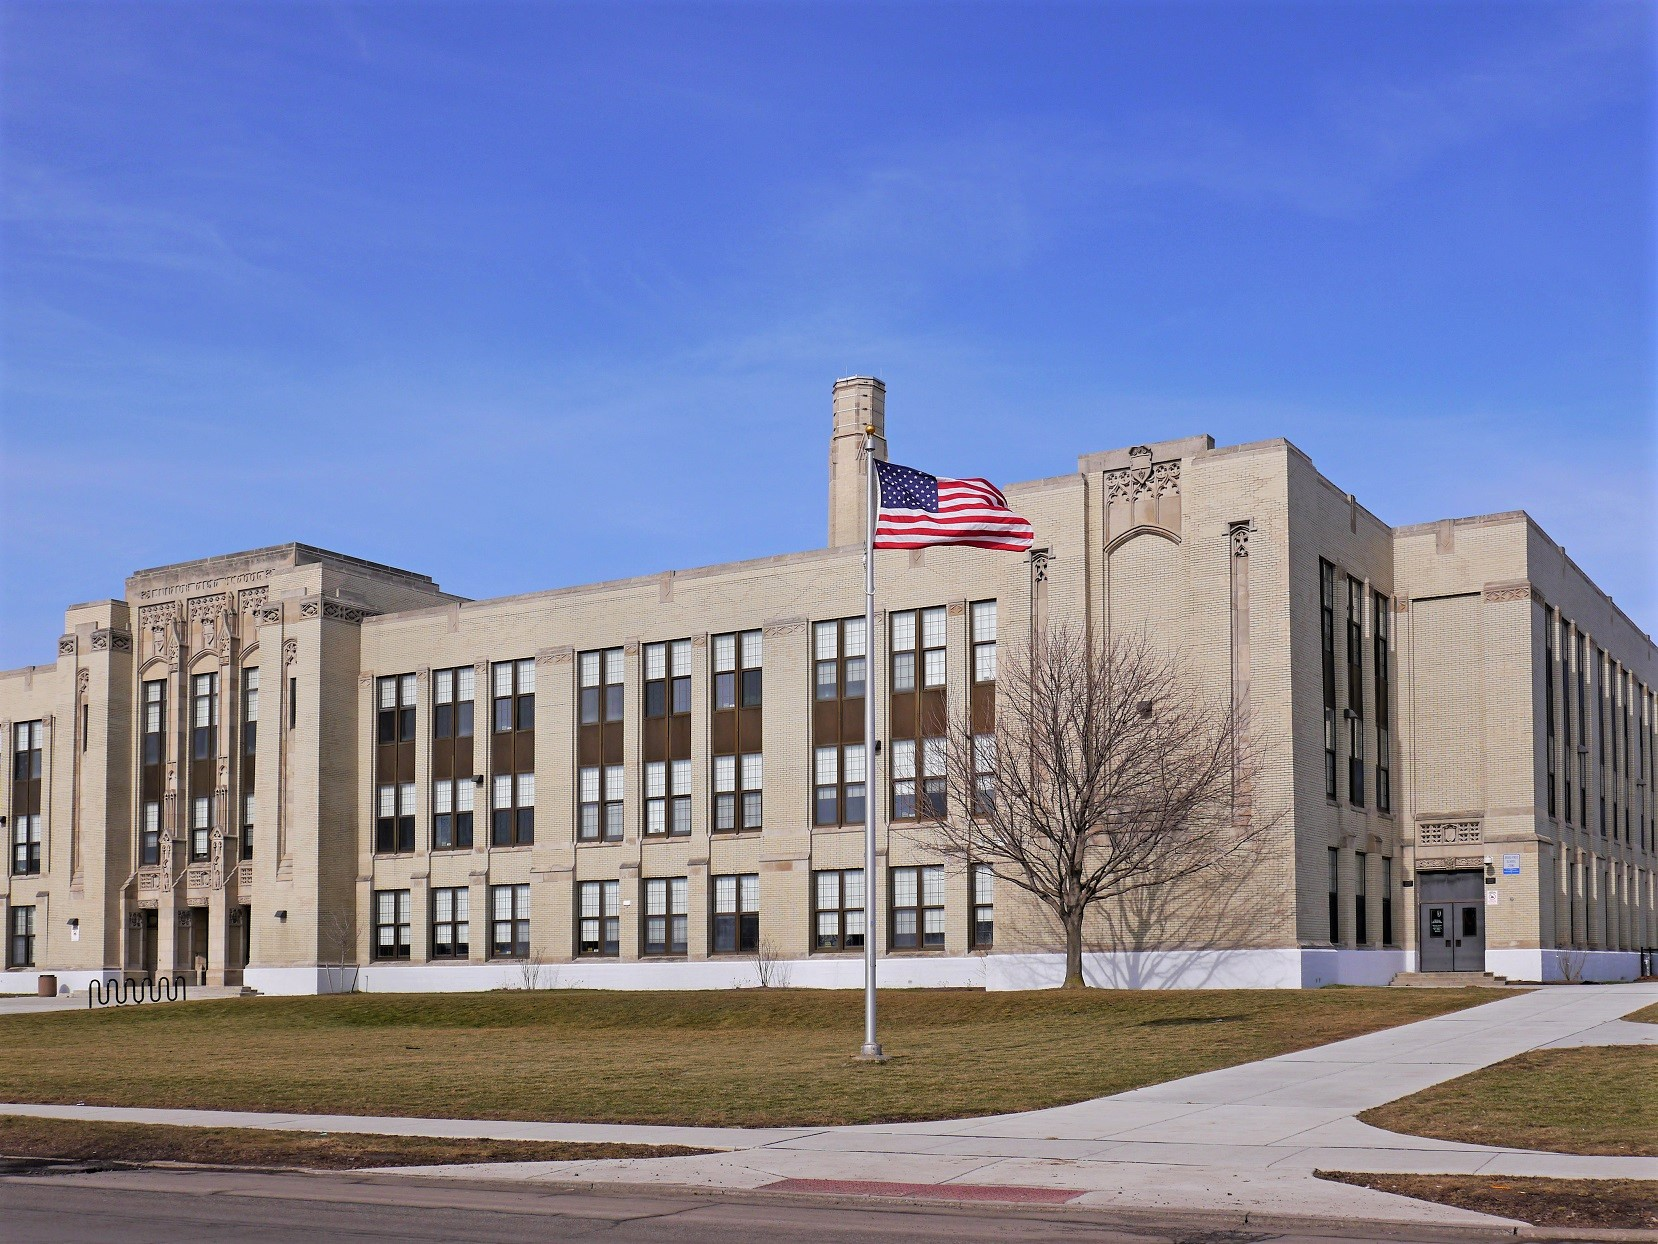 High School Building with American Flag Pole